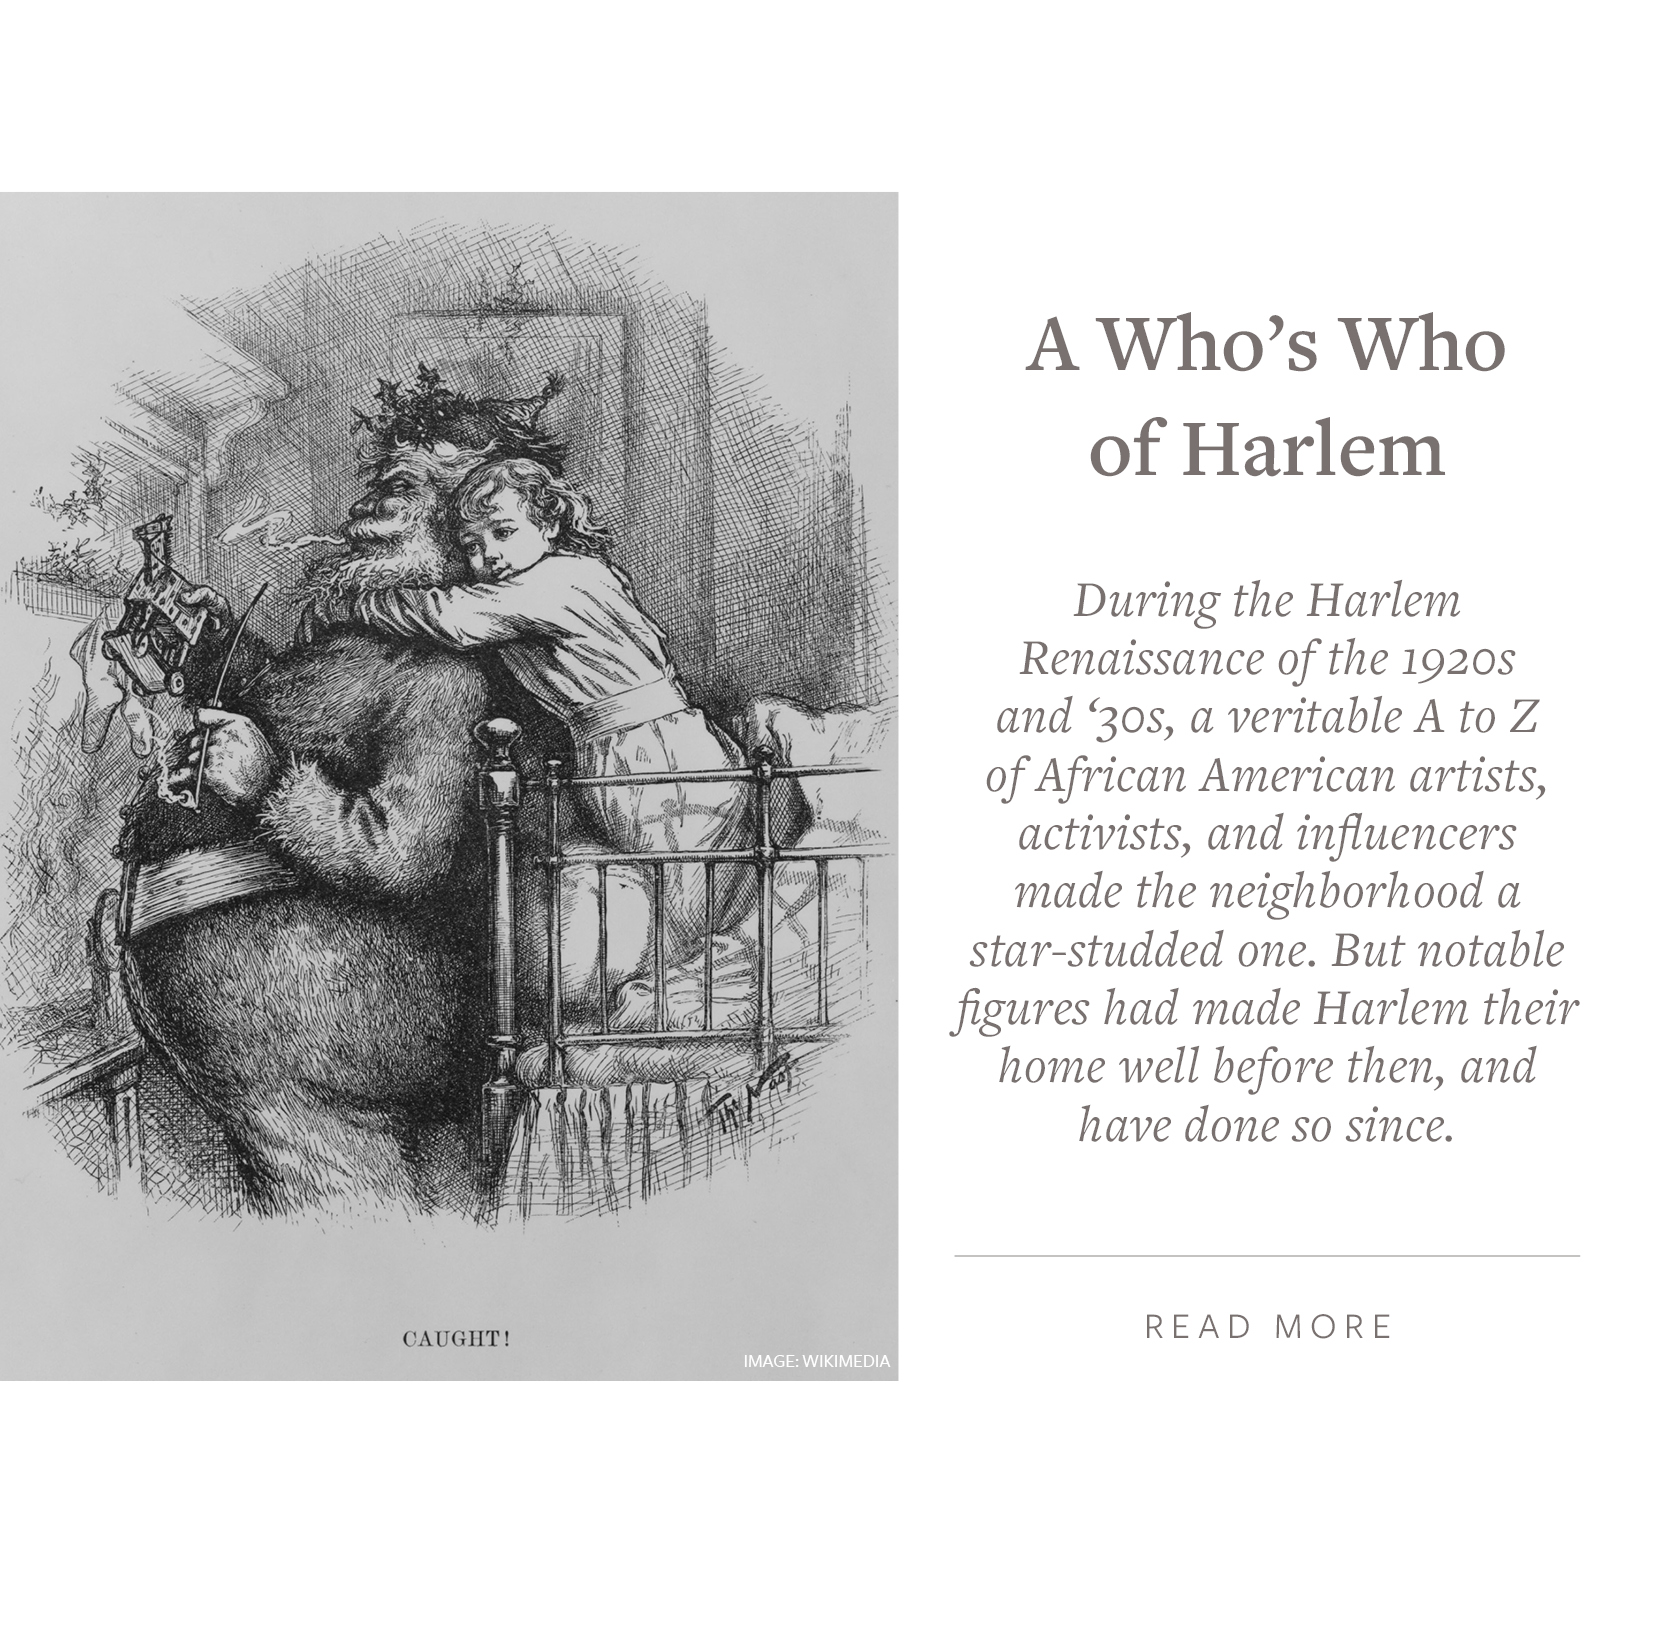 Harlem Renaissance of the 1920s and 1930s - Artist, Activists, and Influencers